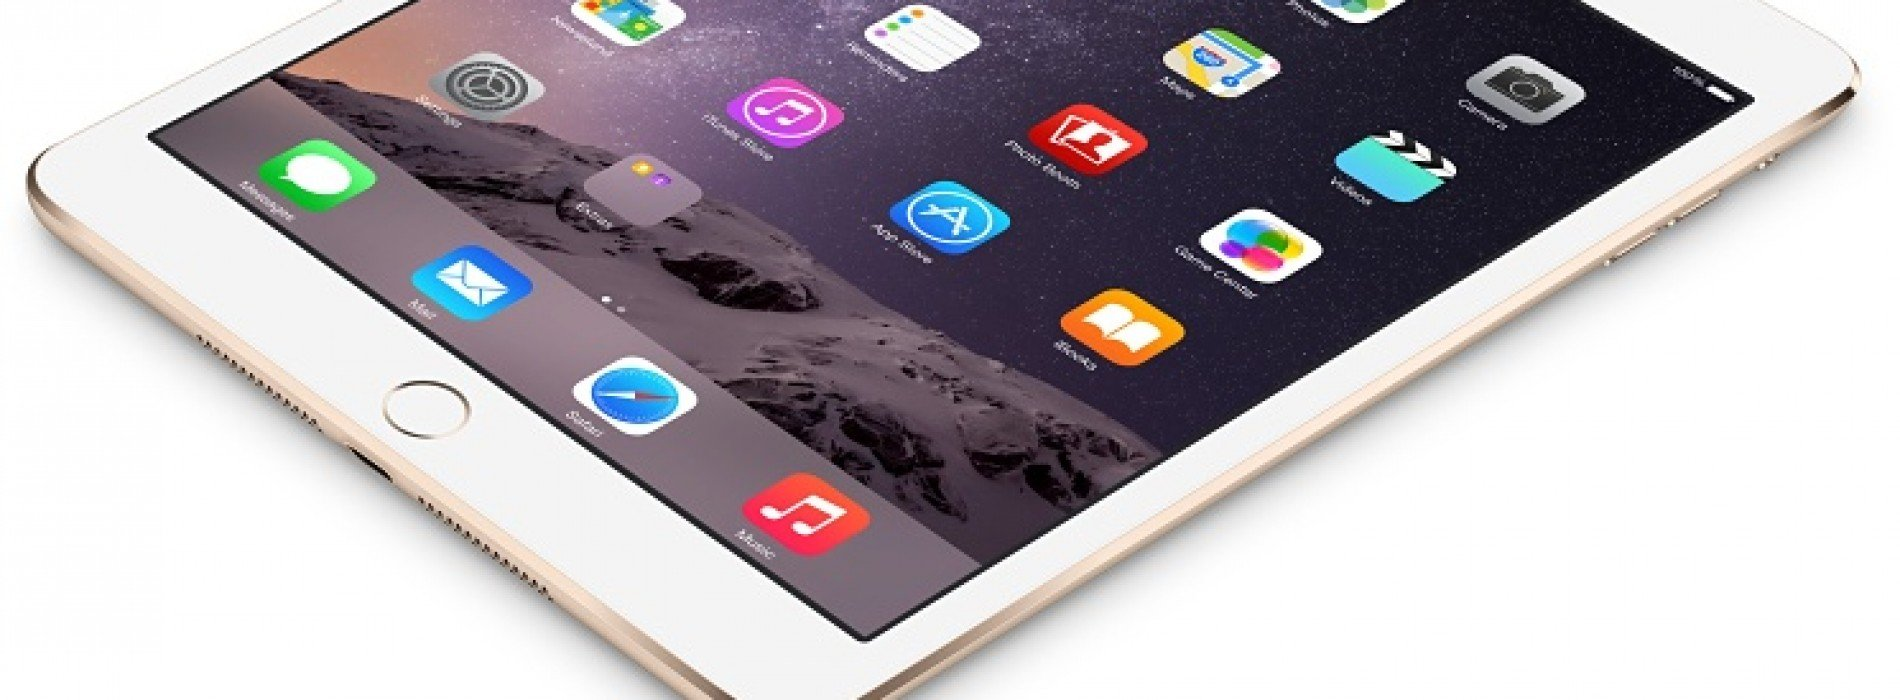 Rumores de un posible iPad mini